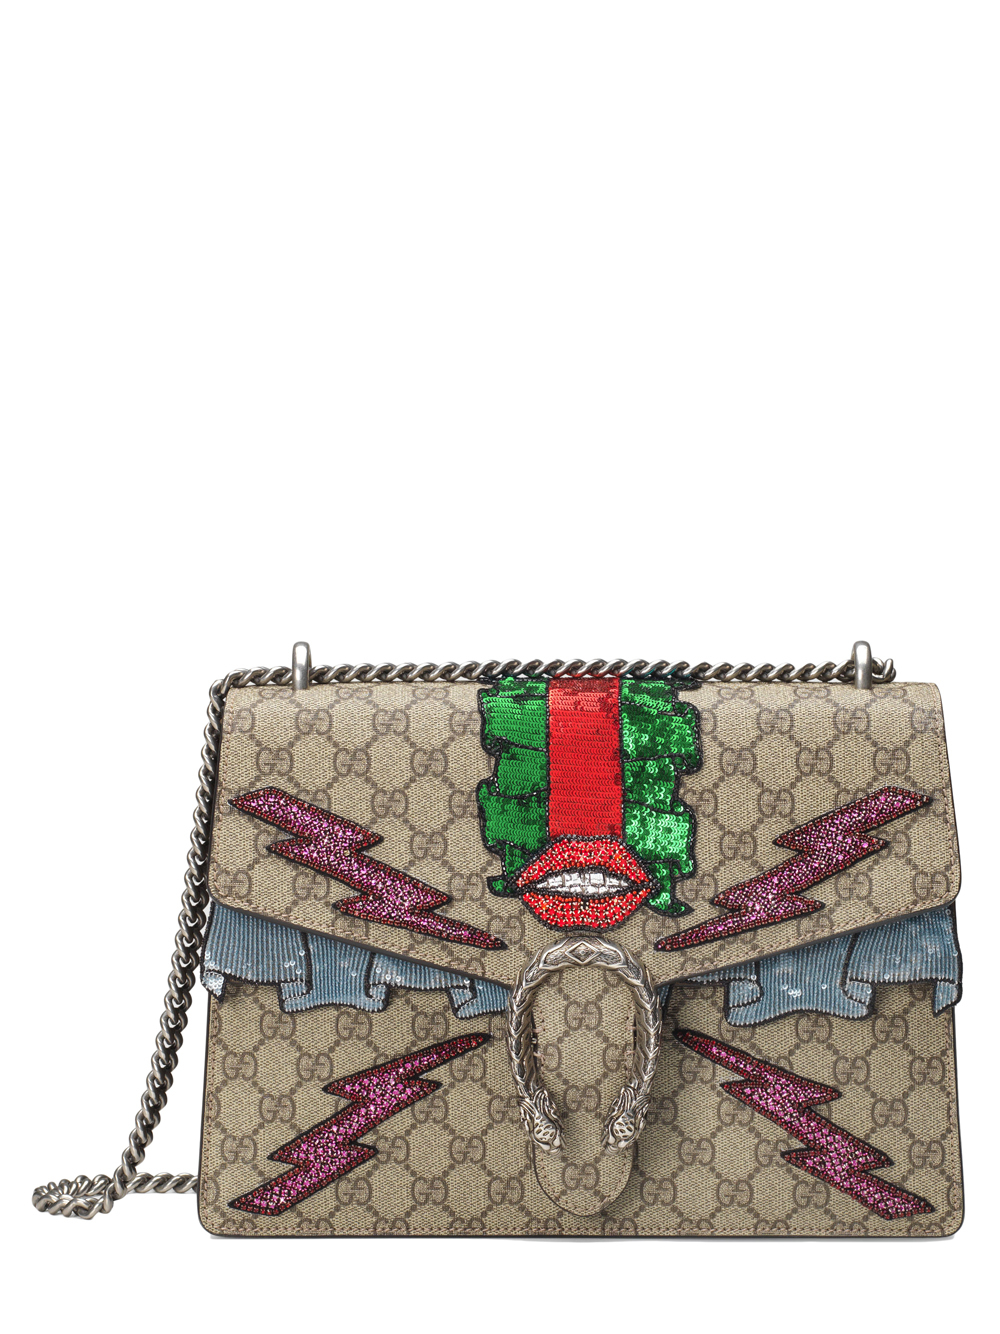 KirnaZabete-Gucci-Dionysus-GG-Supreme-Embroidered-Bag-31.jpg